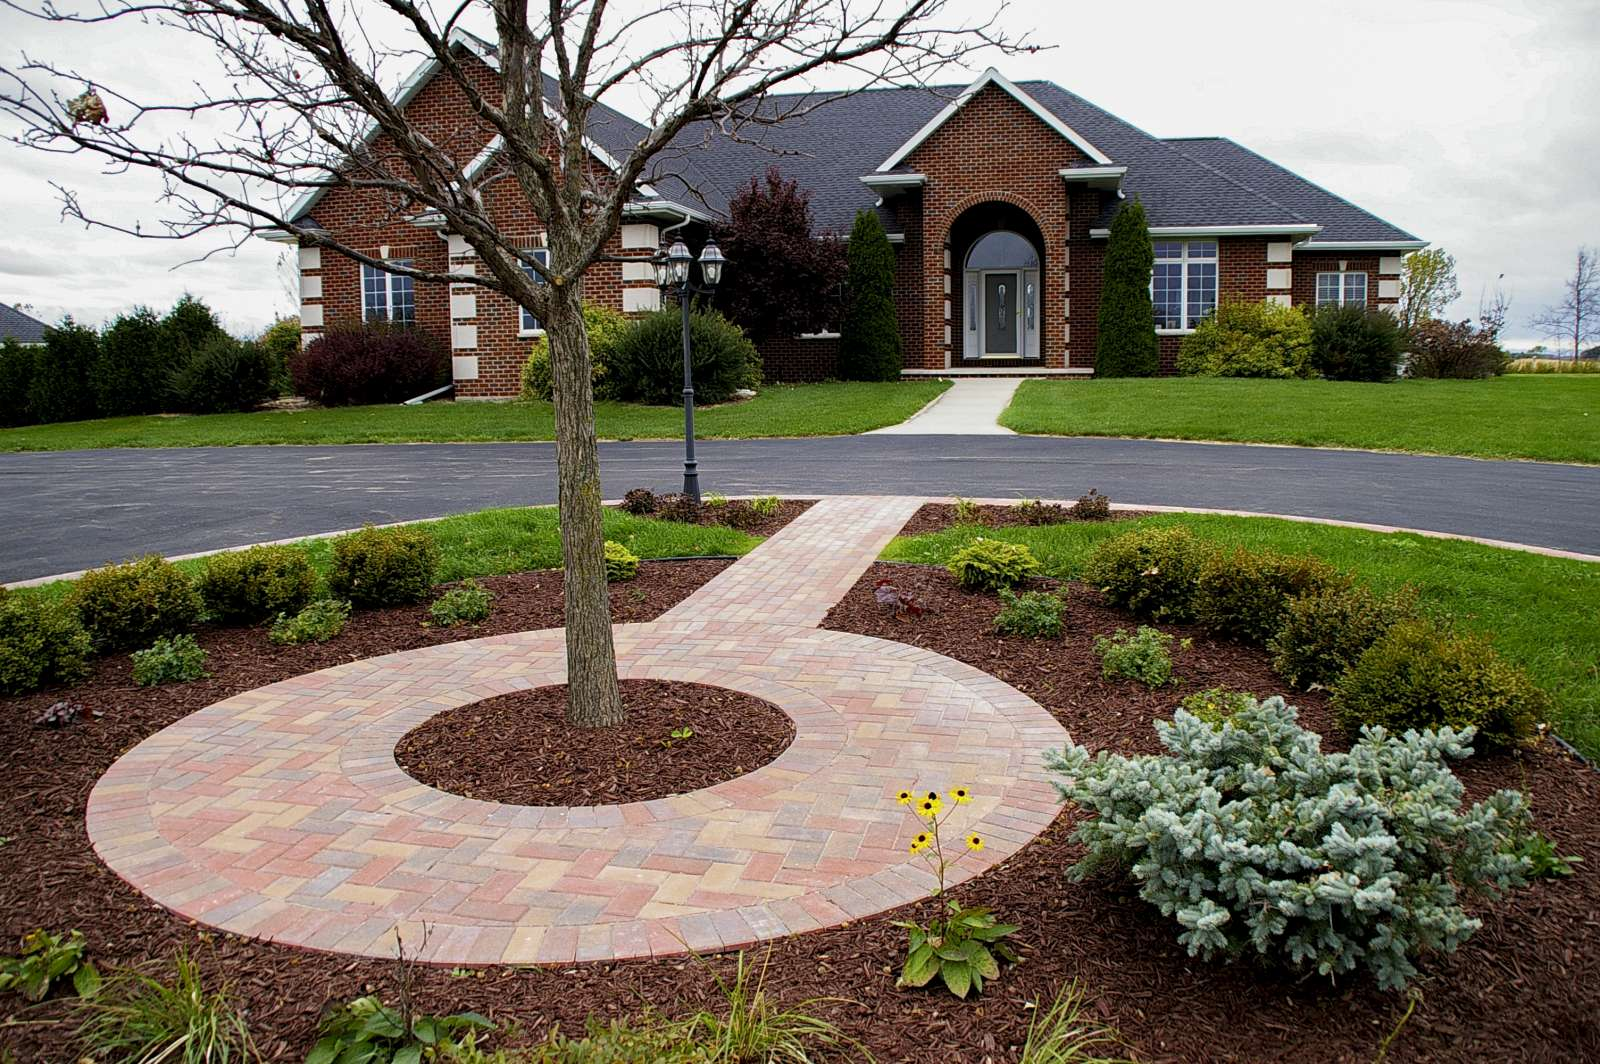 Landscaping Design of Patios, Walkways, and Paths, in ... on Landscaping And Patios id=16800